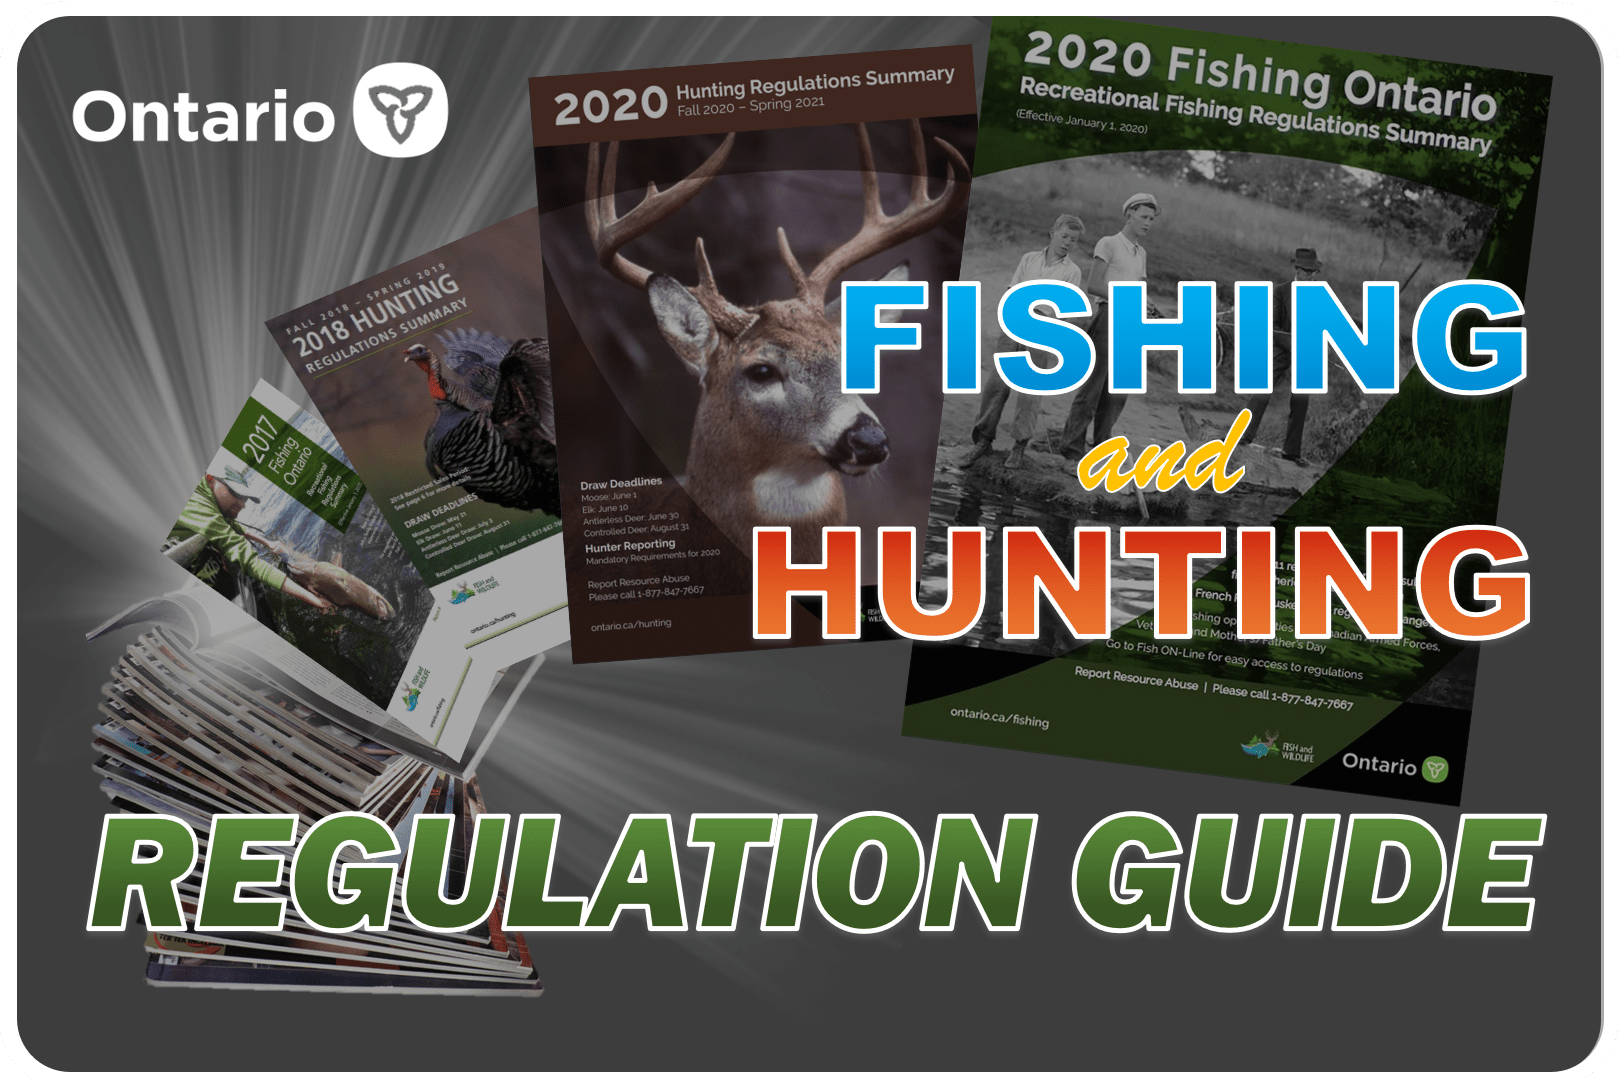 Here at Fishing World, we supply the annual Ontario Fishing Regulation Guide and the annual Ontario Hunting Regulation Guide in-store and online!